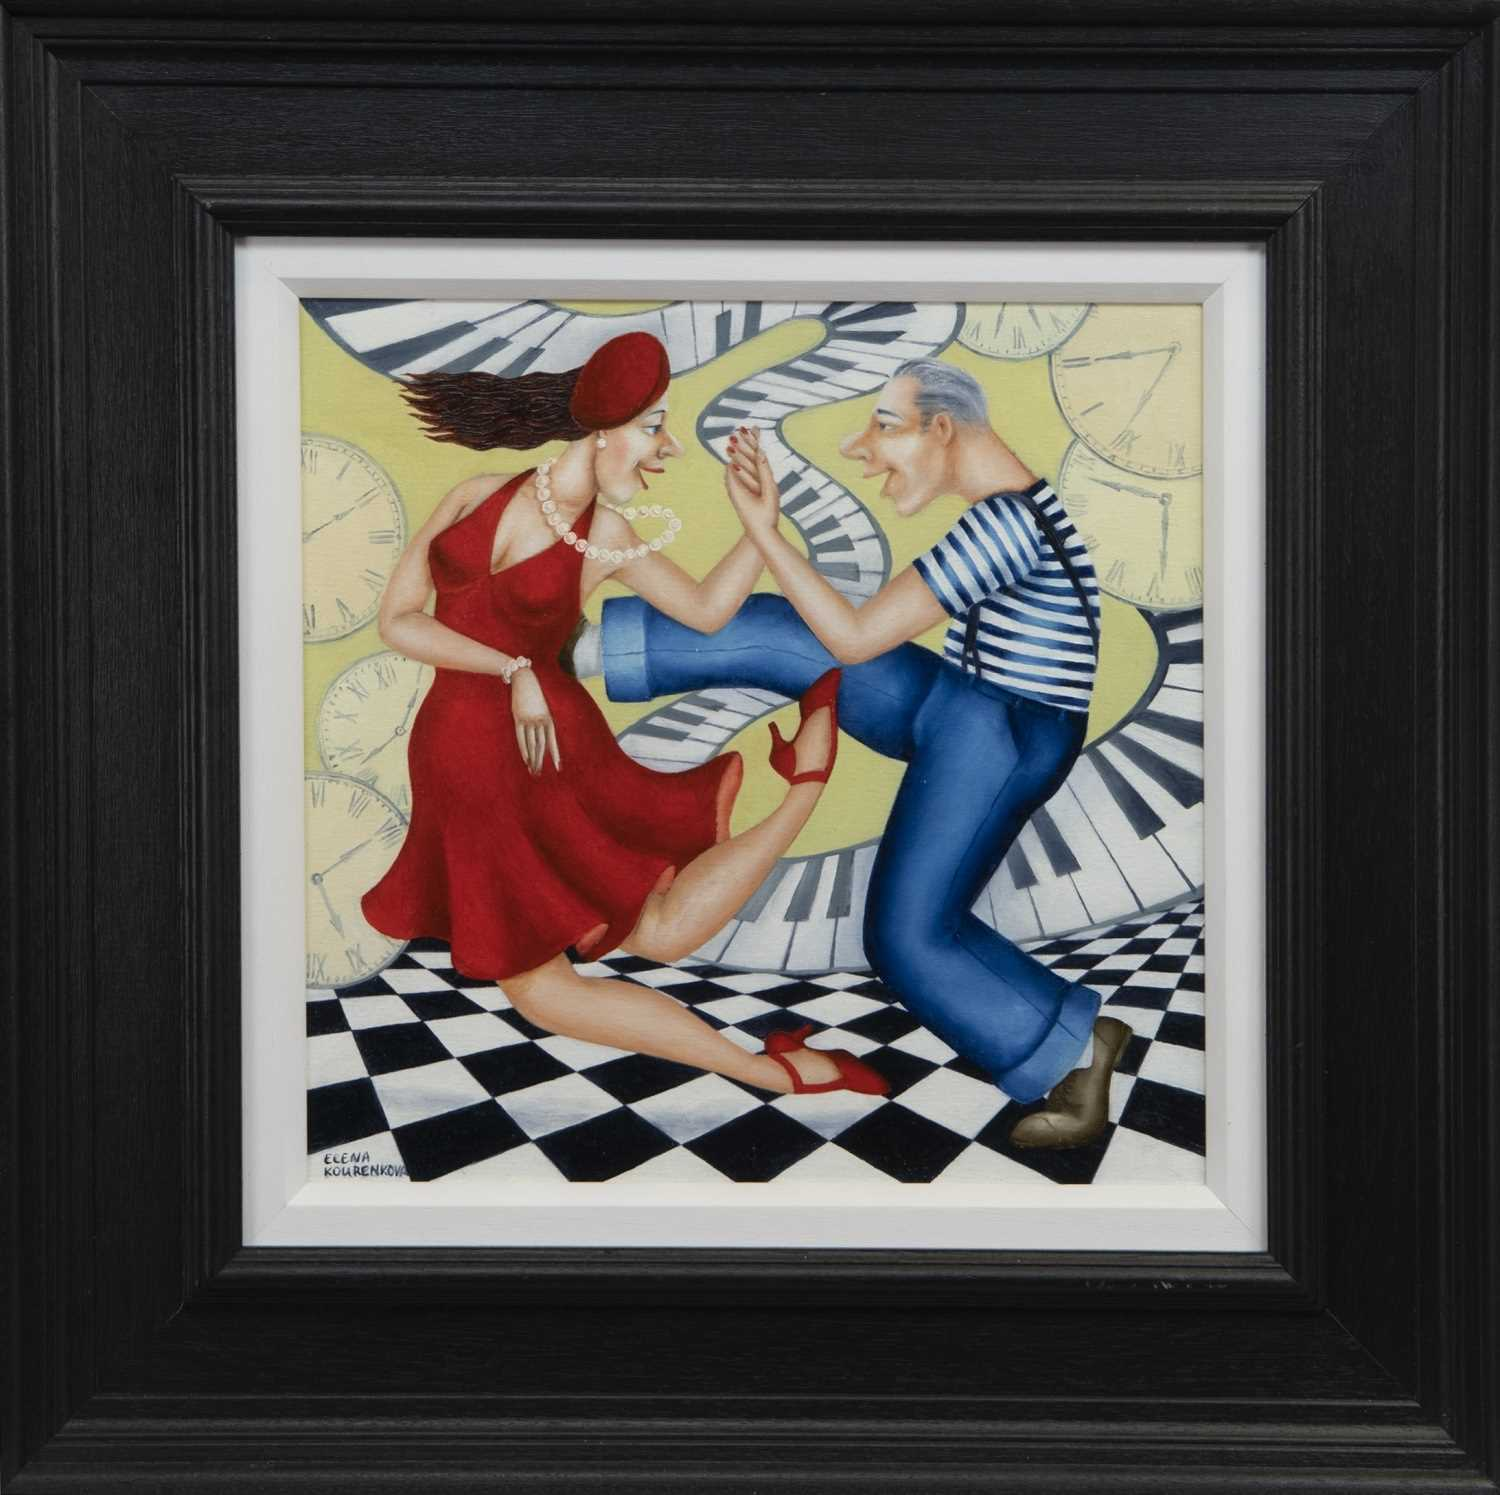 Lot 541 - YOU MAKE MY PANTS WANT TO GET UP AND DANCE, AN OIL BY ELENA KOURENKOVA